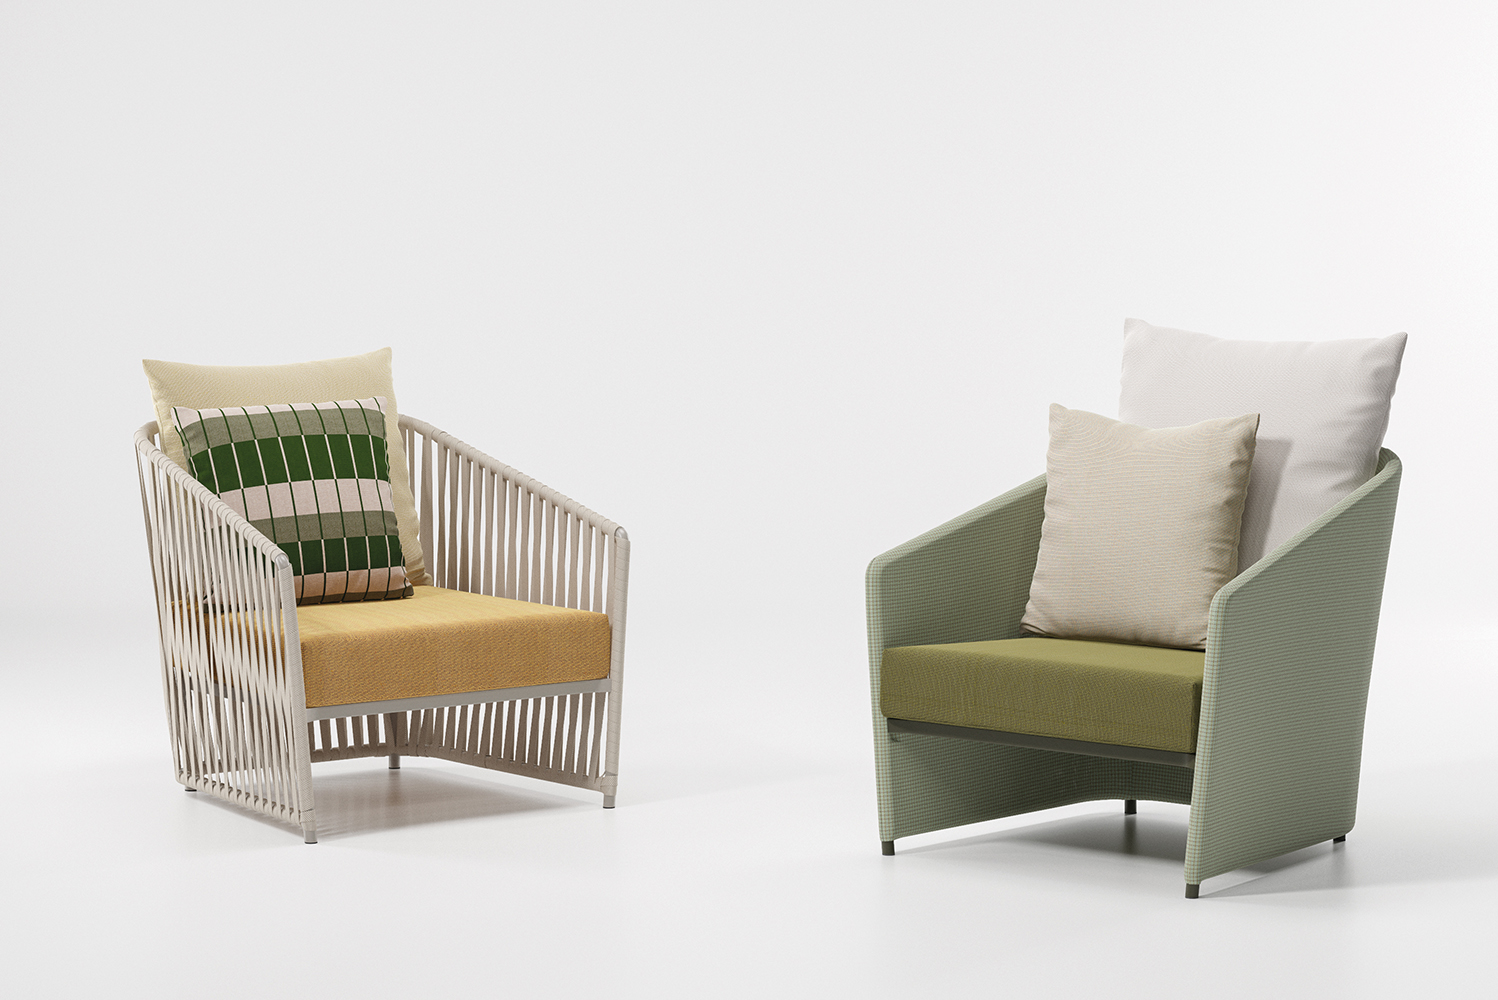 The backrest cushions are made from Terrain and Geometrics fabrics designed by Doshi Levien.